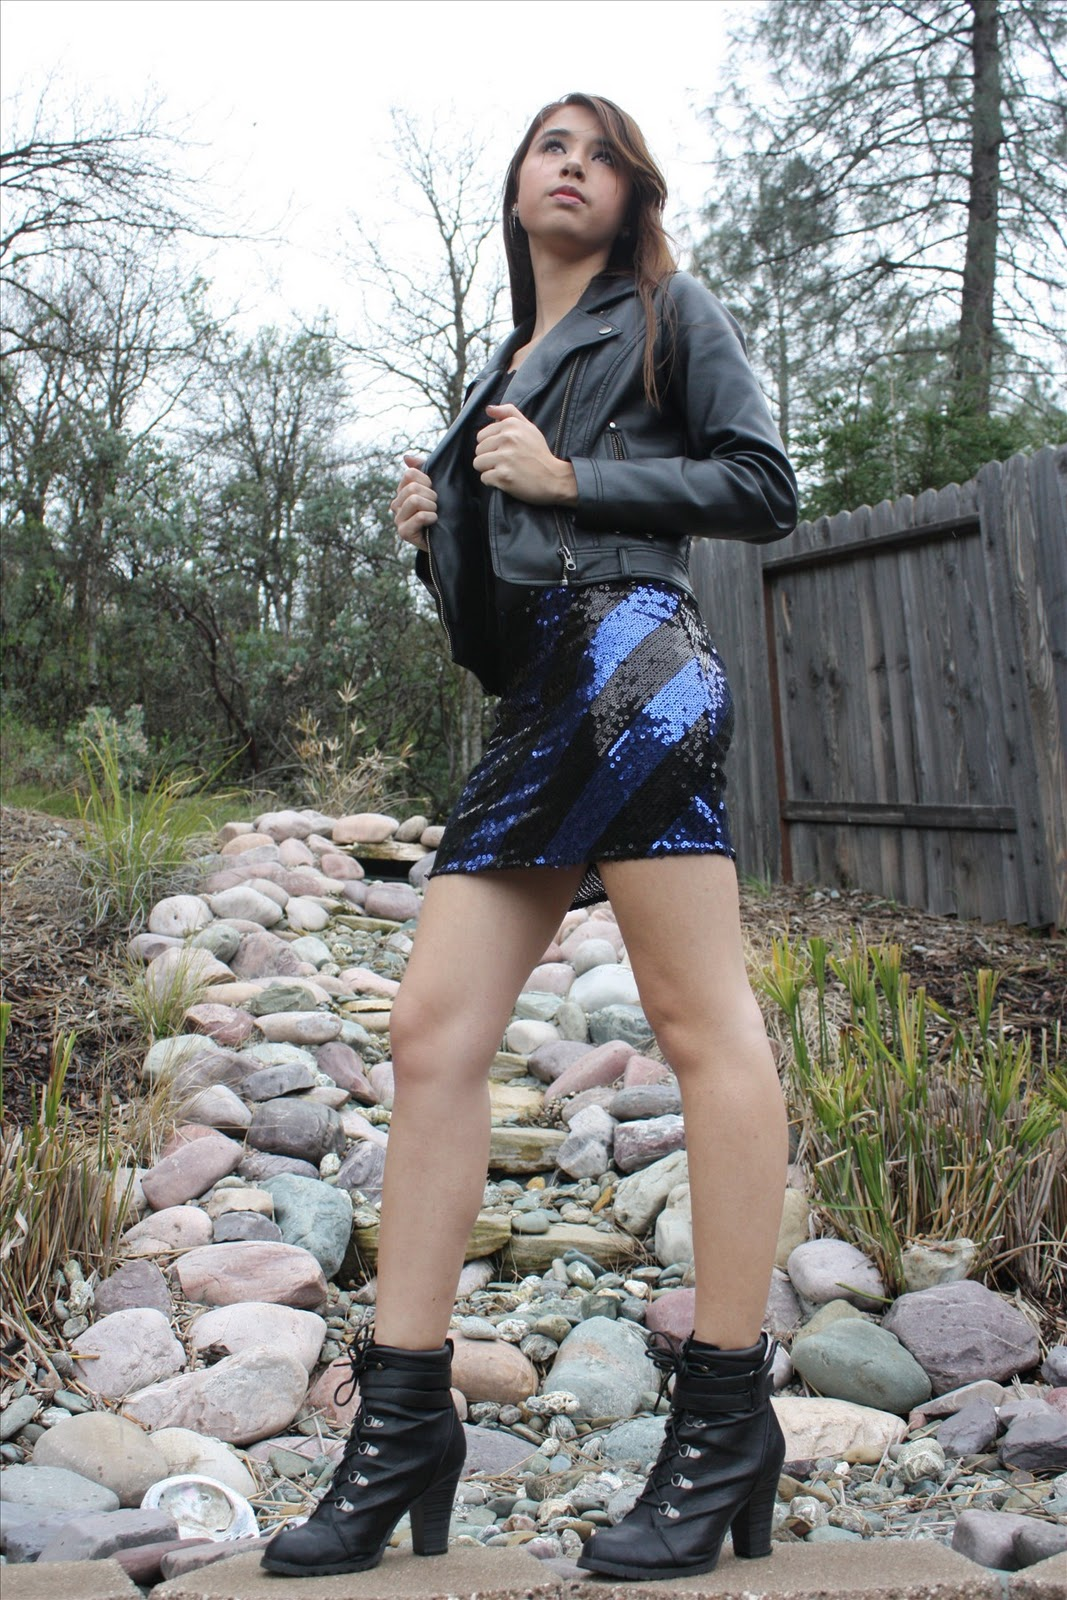 boots-with-piss-ontario-girl-get-fucked